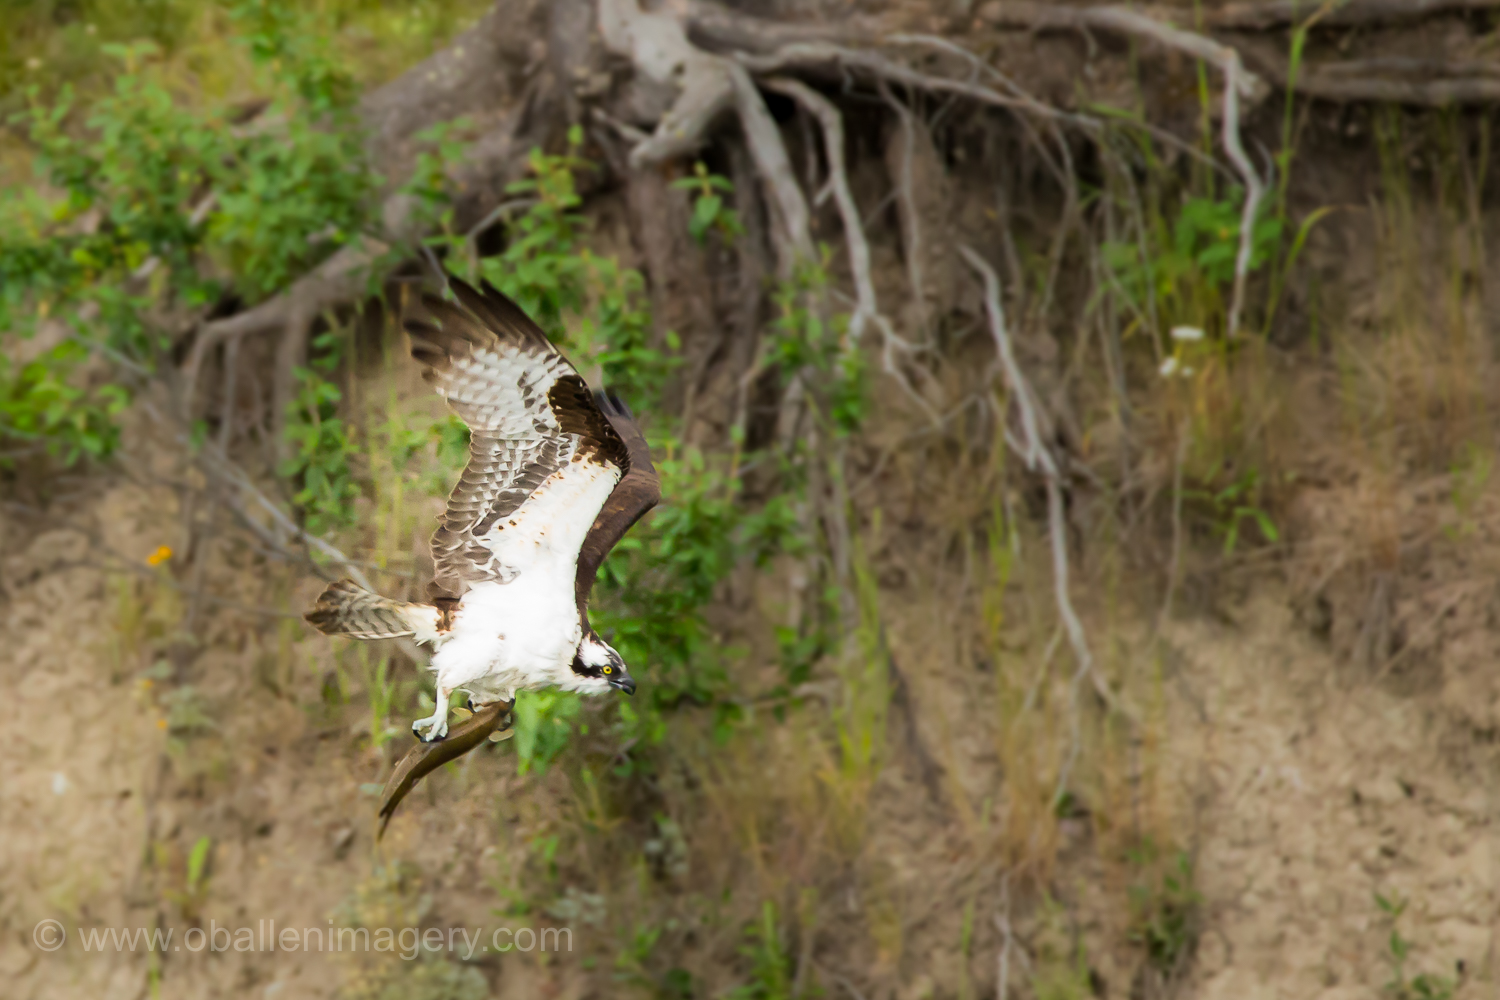 The tenacious osprey with dinner in its talons.